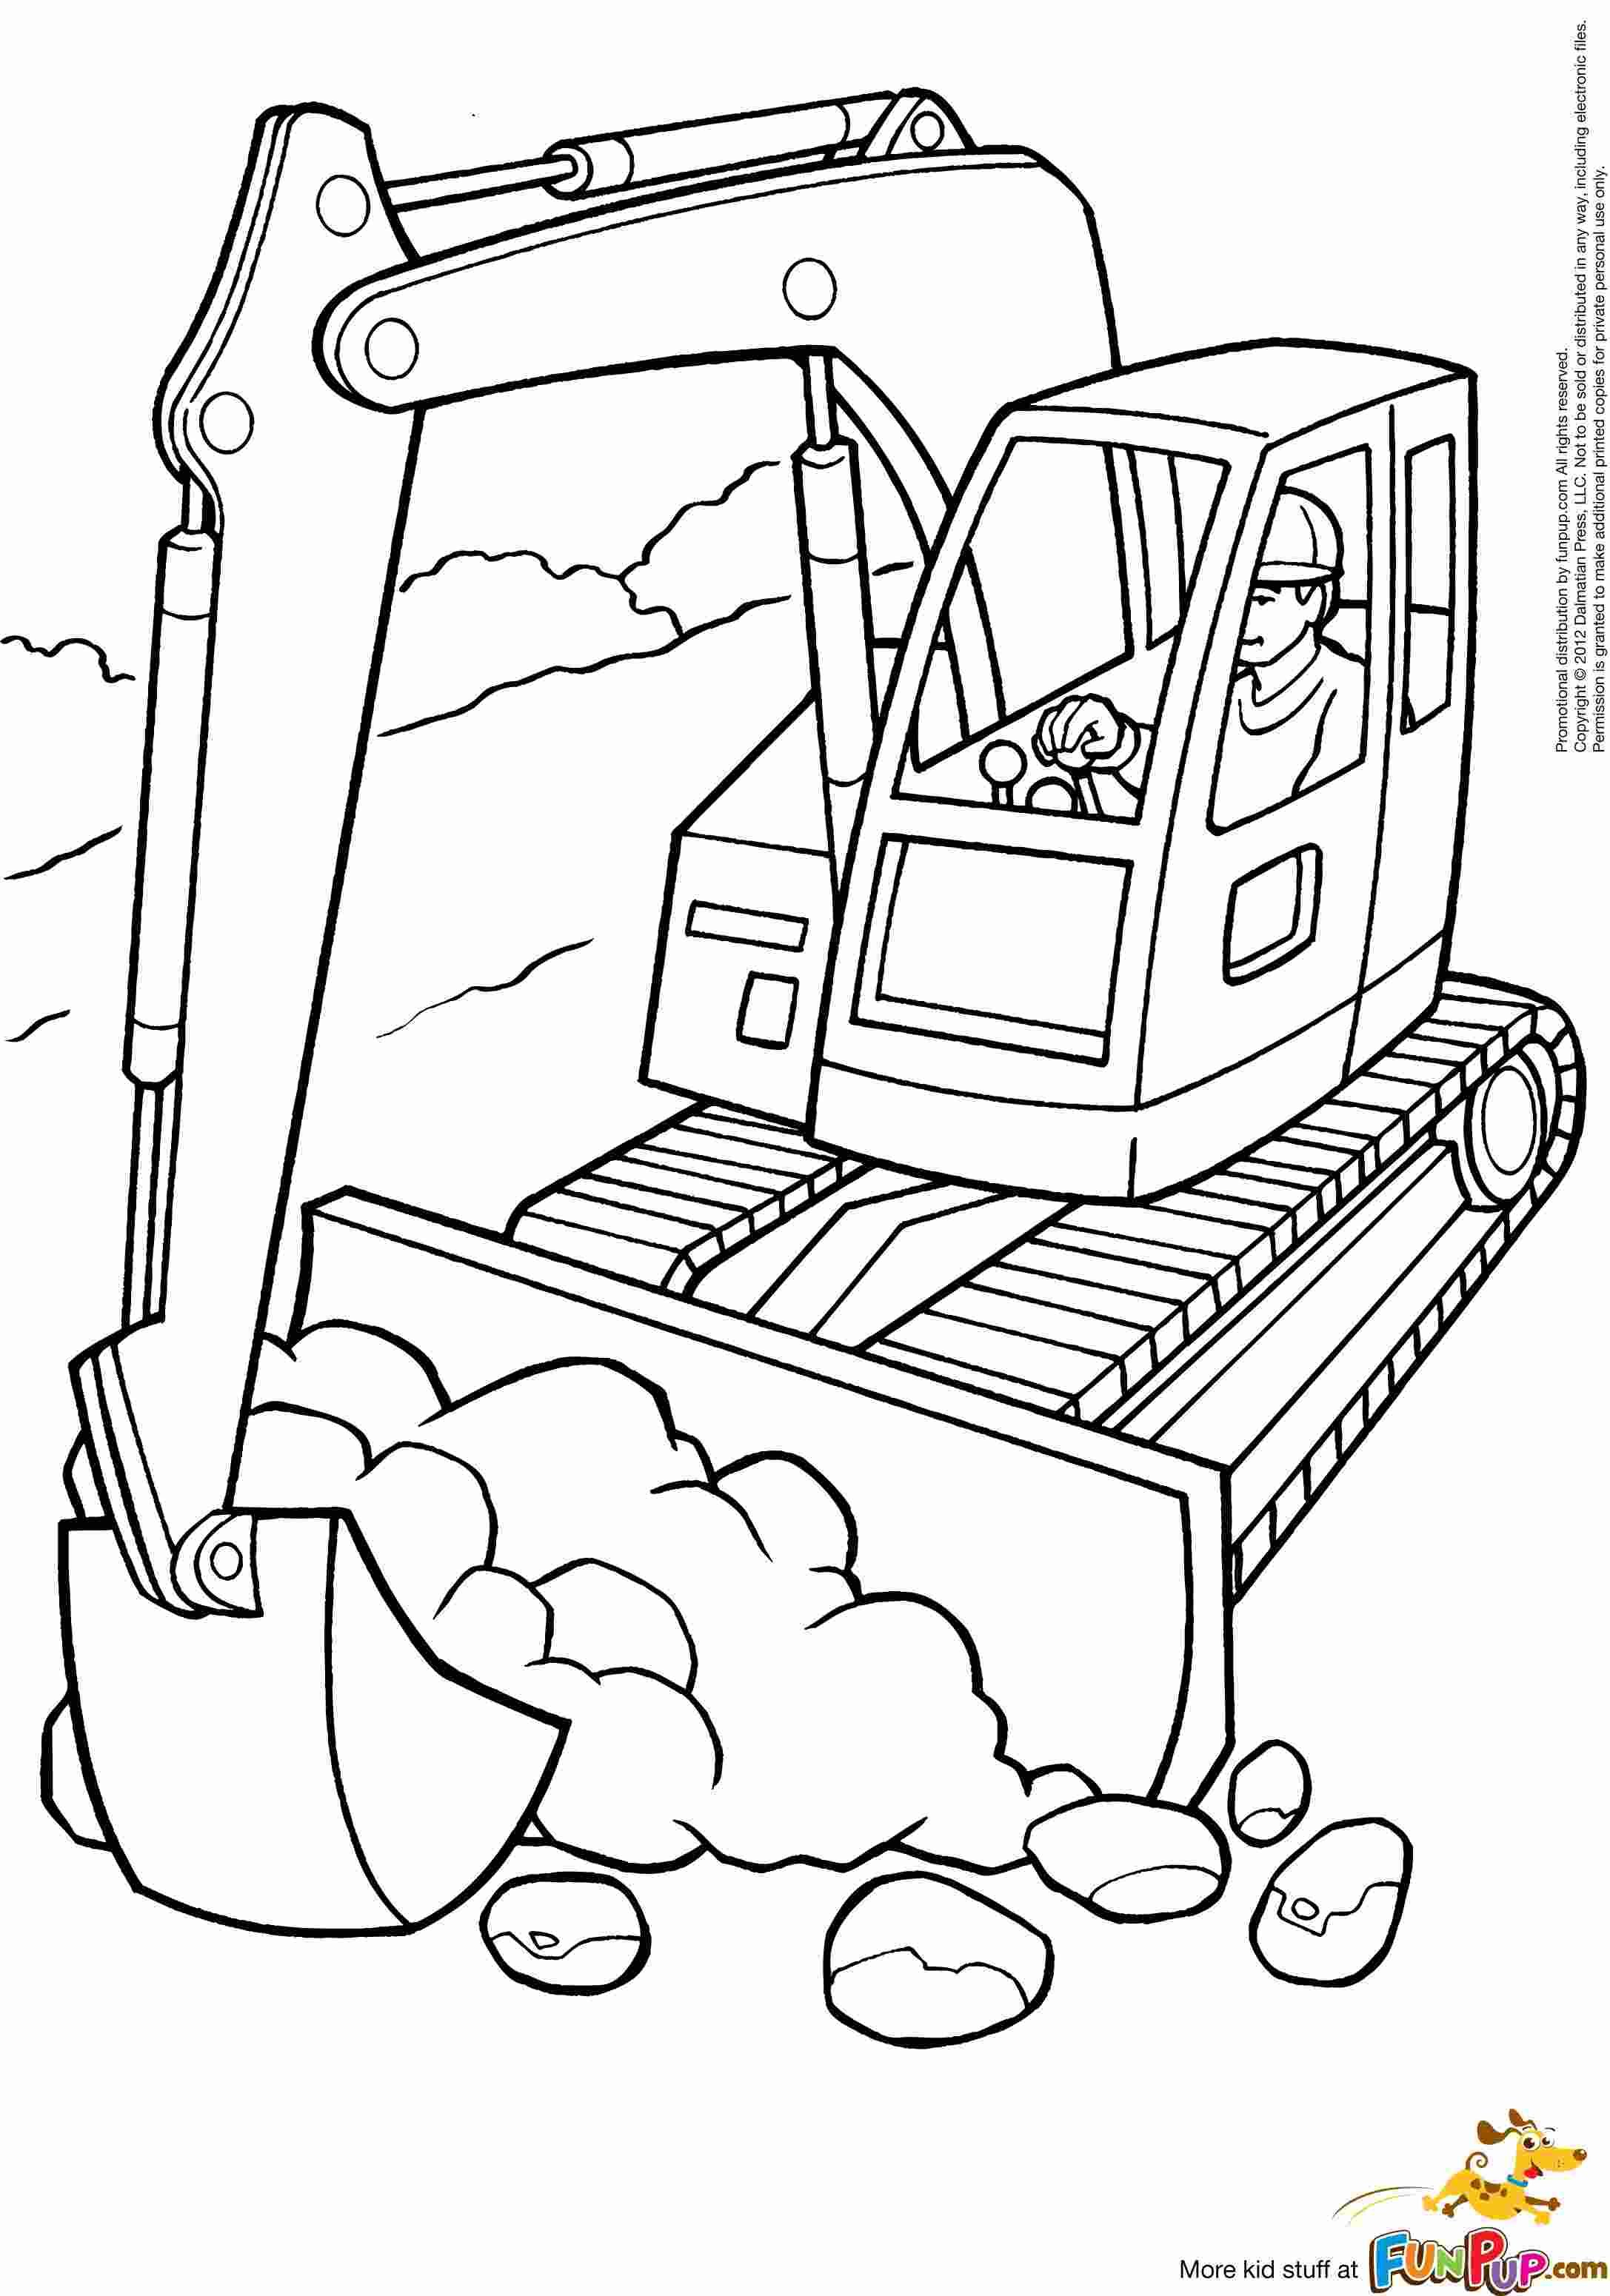 Coloring Book Excavator Coloring Pages More Than 86 Amazing